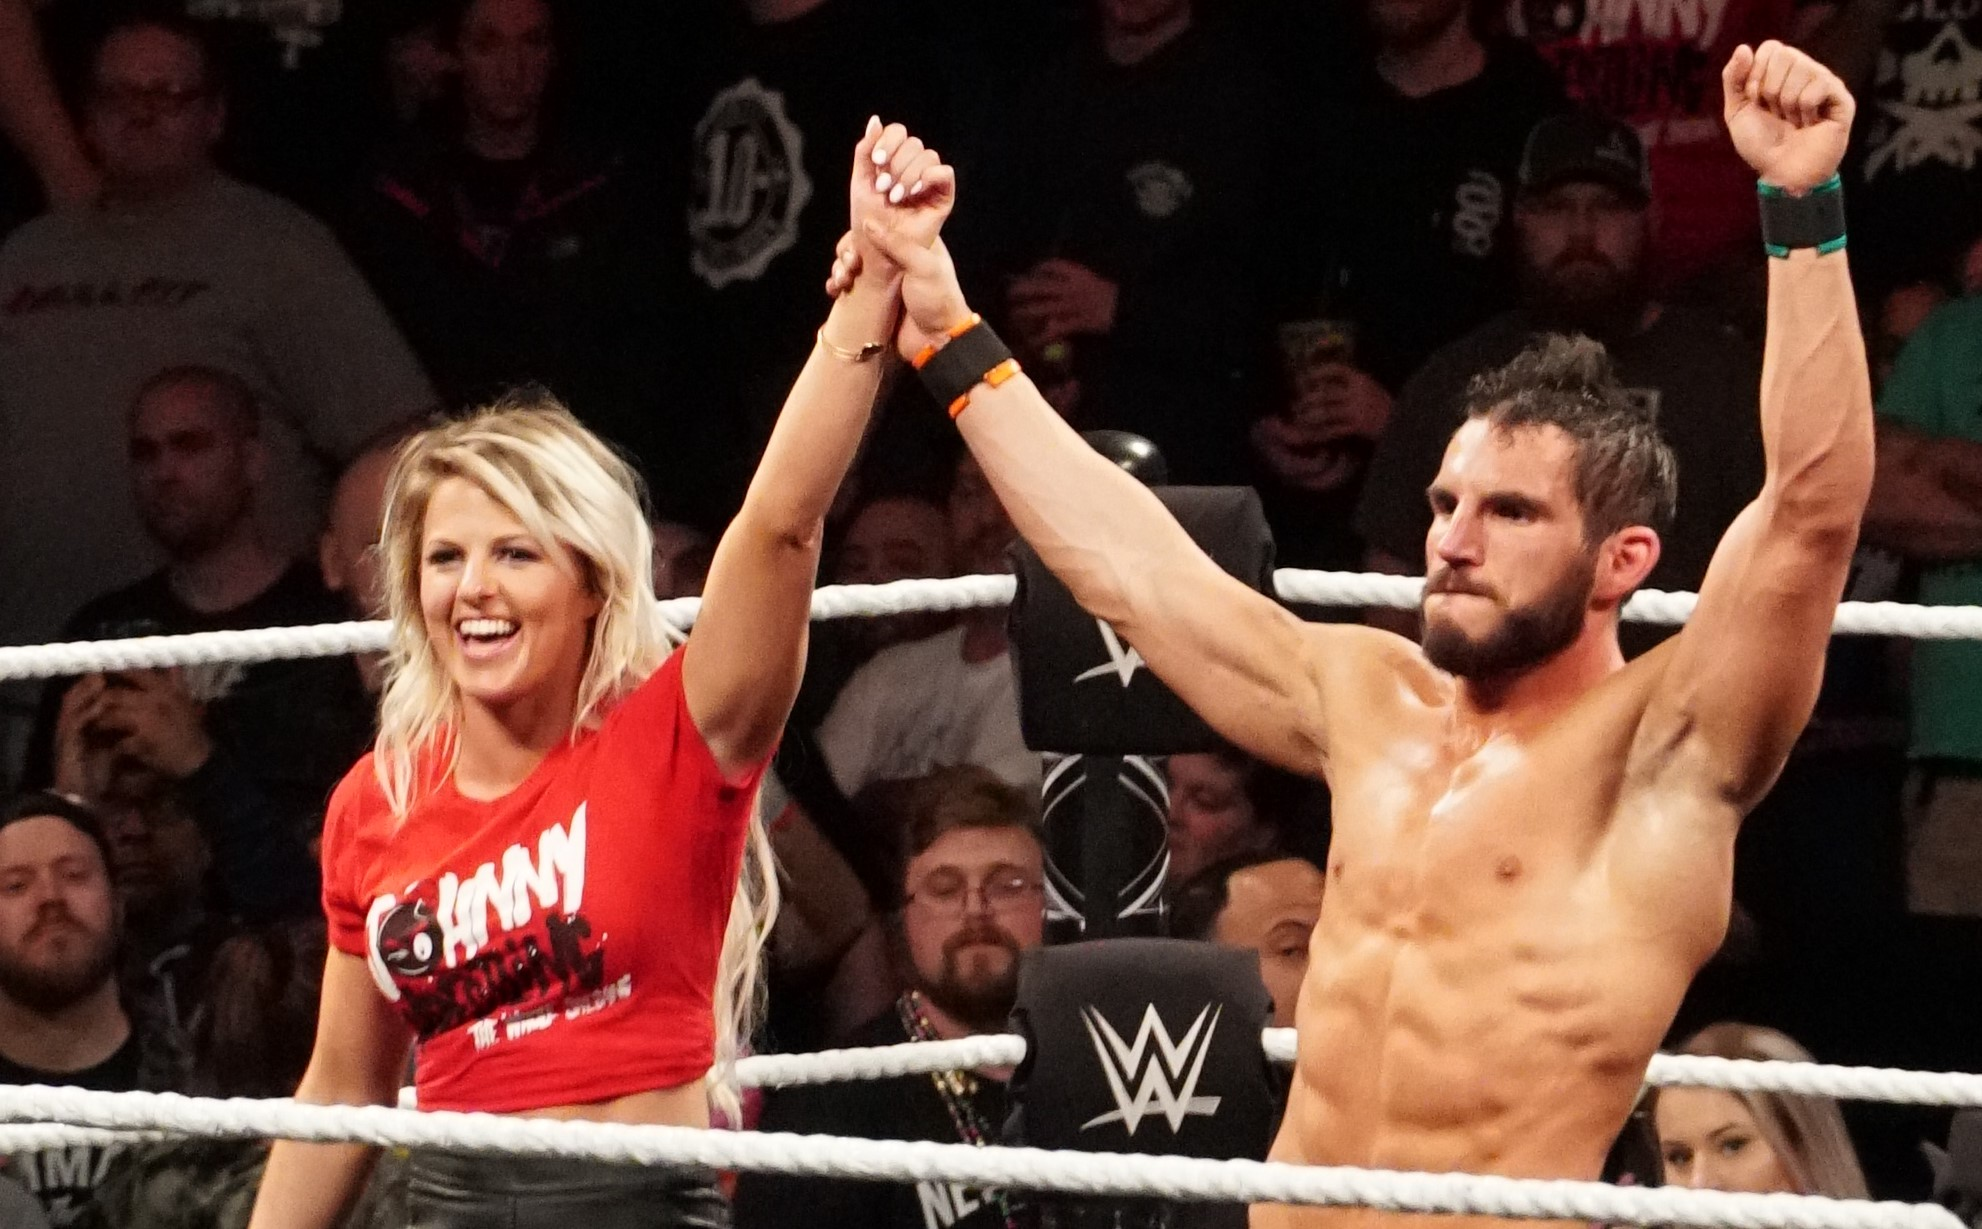 Bayley vs Candice LeRae, ¿en 2020? Johnny Gargano reta a Bayley